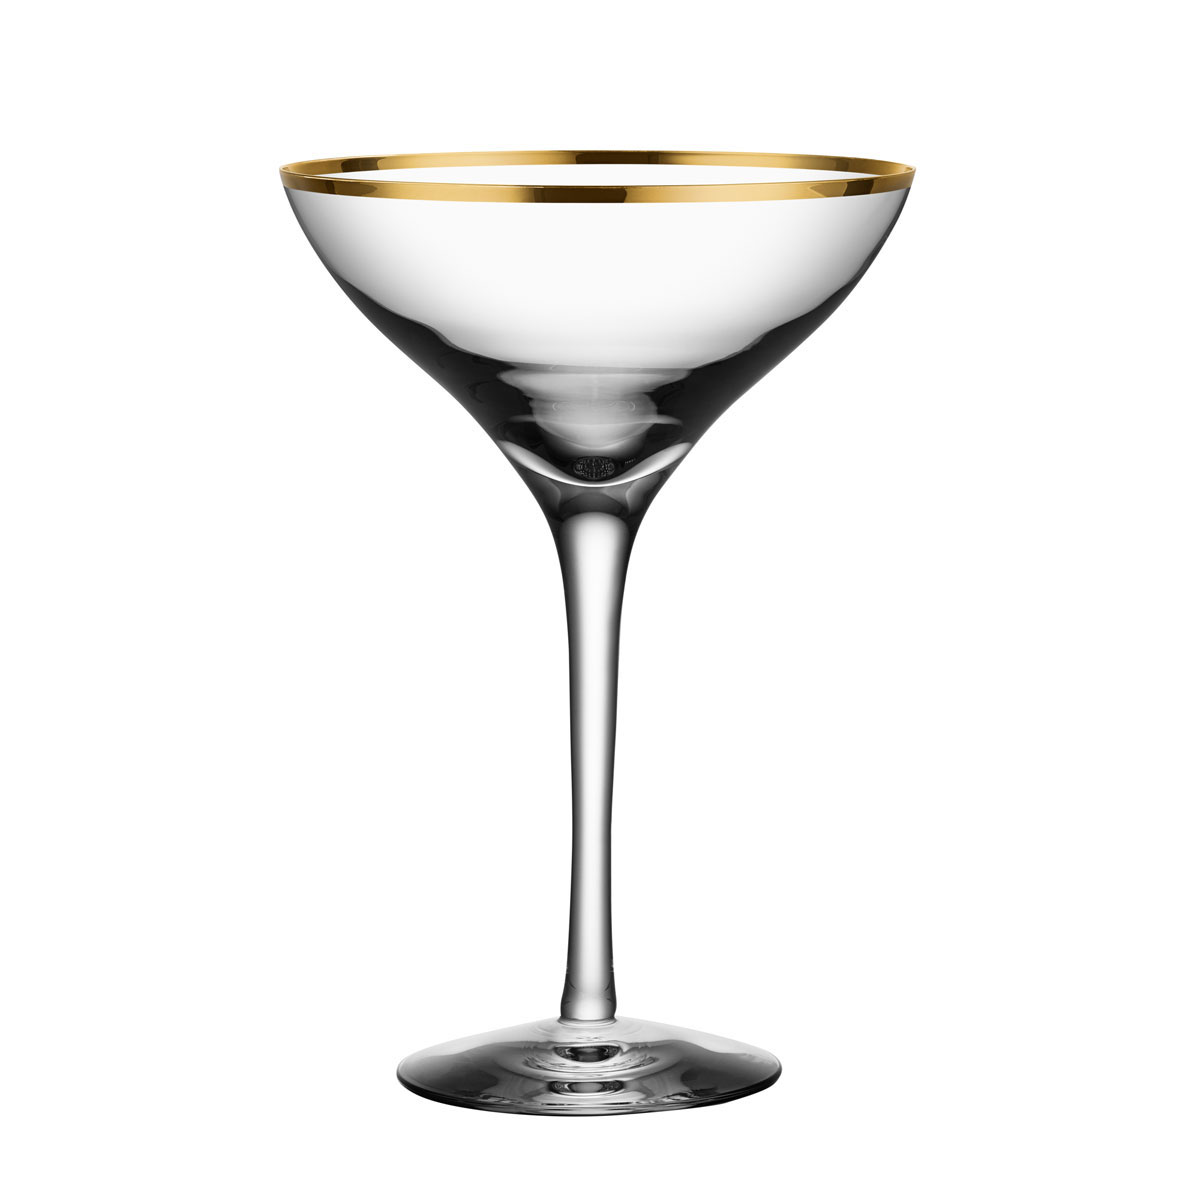 Orrefors Crystal, Morberg Exclusive Crystal Champagne Coupe, Pair